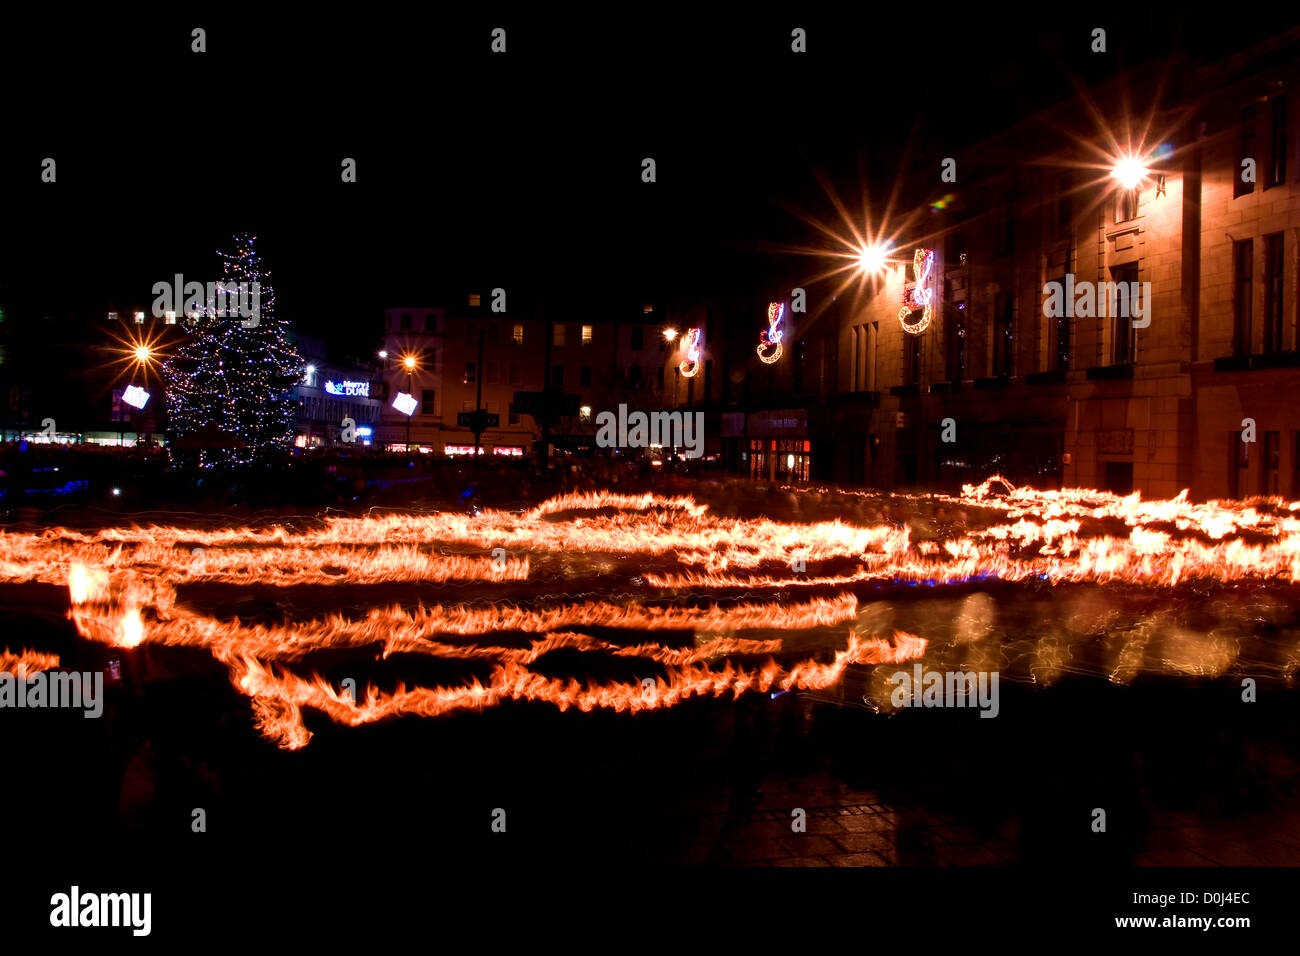 Crowds with lit torches parading around the city at night during the Christmas Tree Lights switch on in Dundee,UK Stock Photo